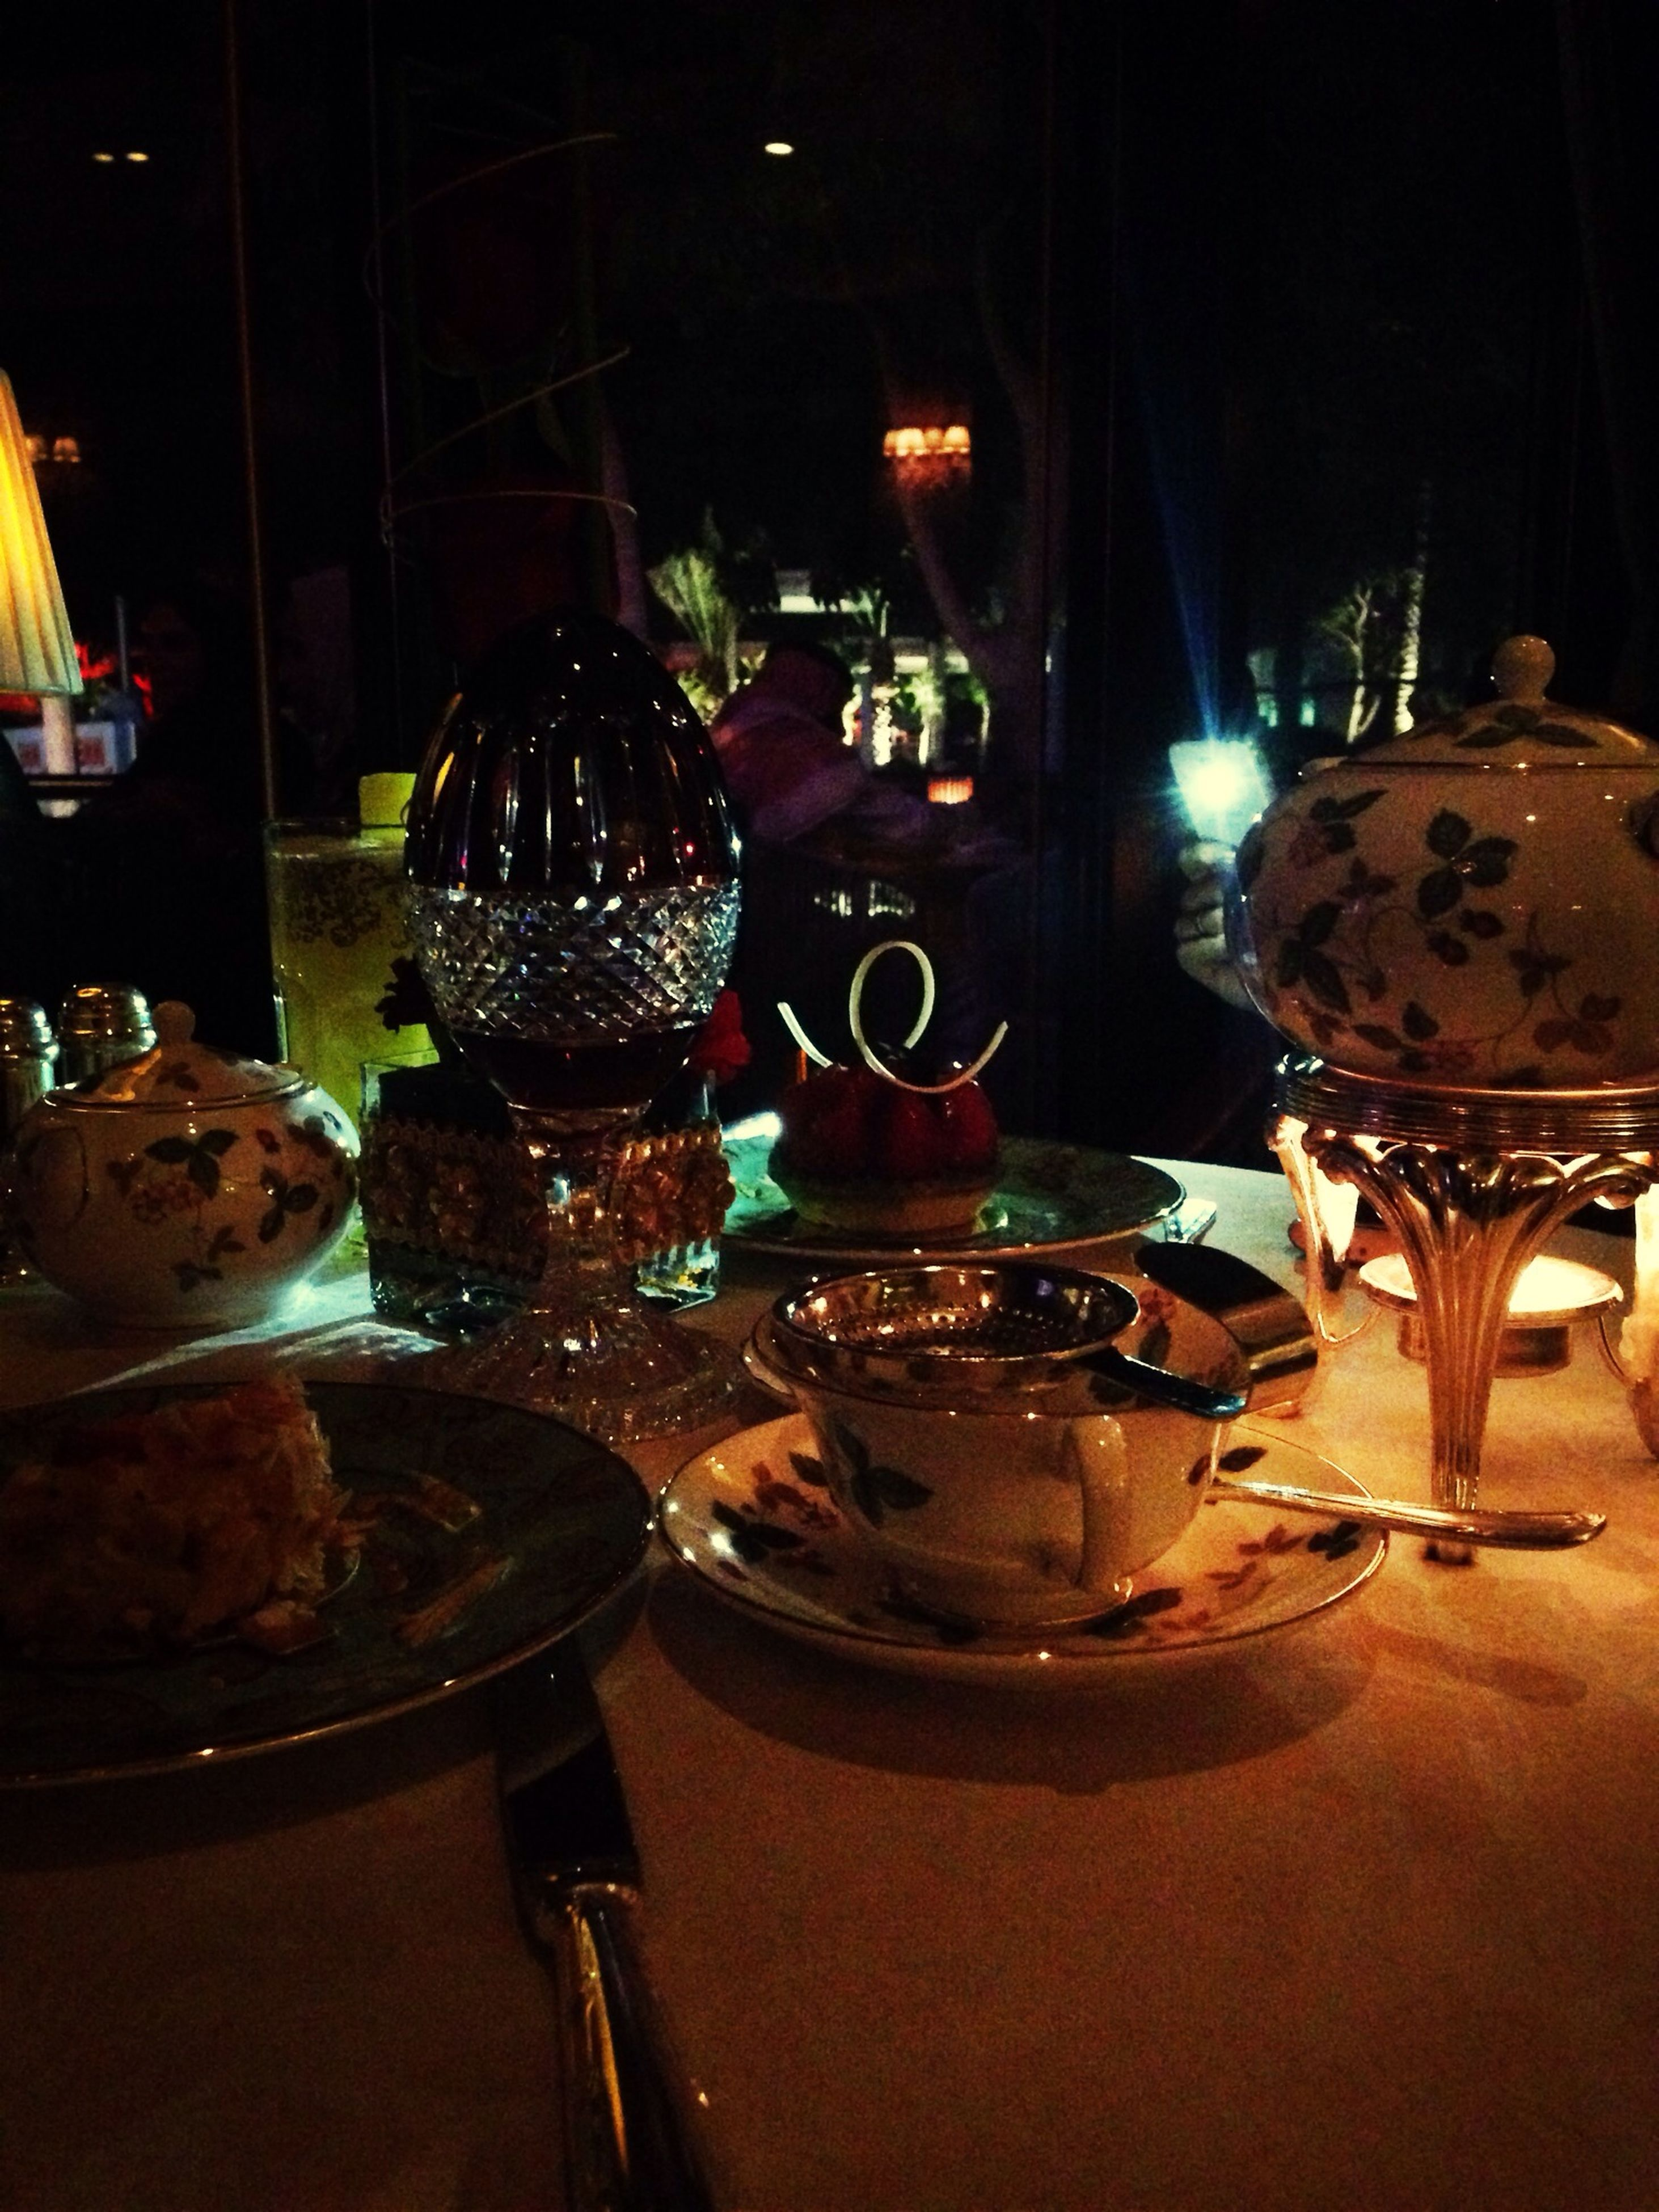 indoors, still life, table, close-up, illuminated, glass - material, night, metal, no people, food and drink, decoration, focus on foreground, container, antique, variation, home interior, old-fashioned, transparent, lighting equipment, restaurant